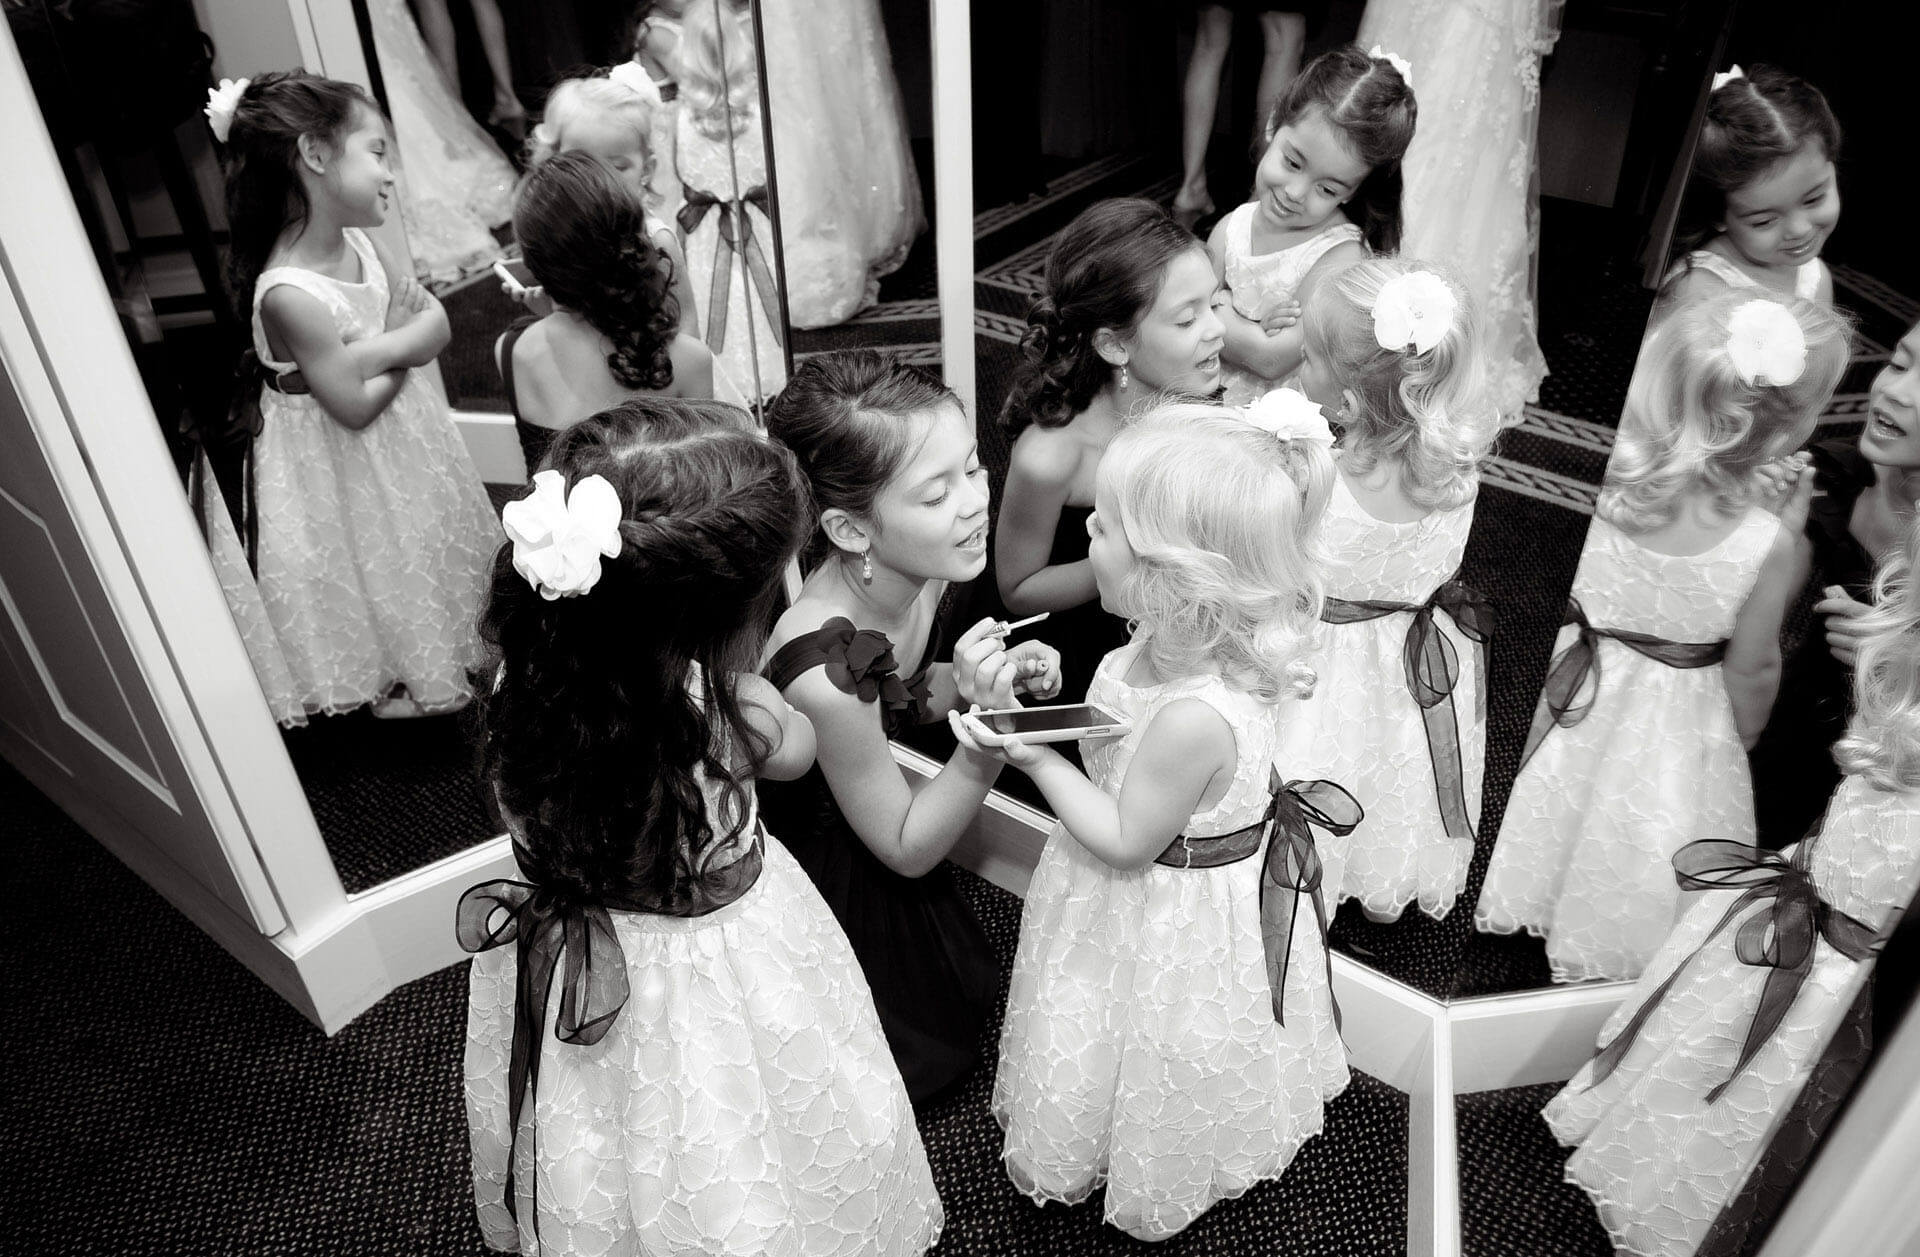 All the little girls in the wedding party at a Cherry Creek wedding in Shelby Charter Township, Michigan, try to help each other get ready.